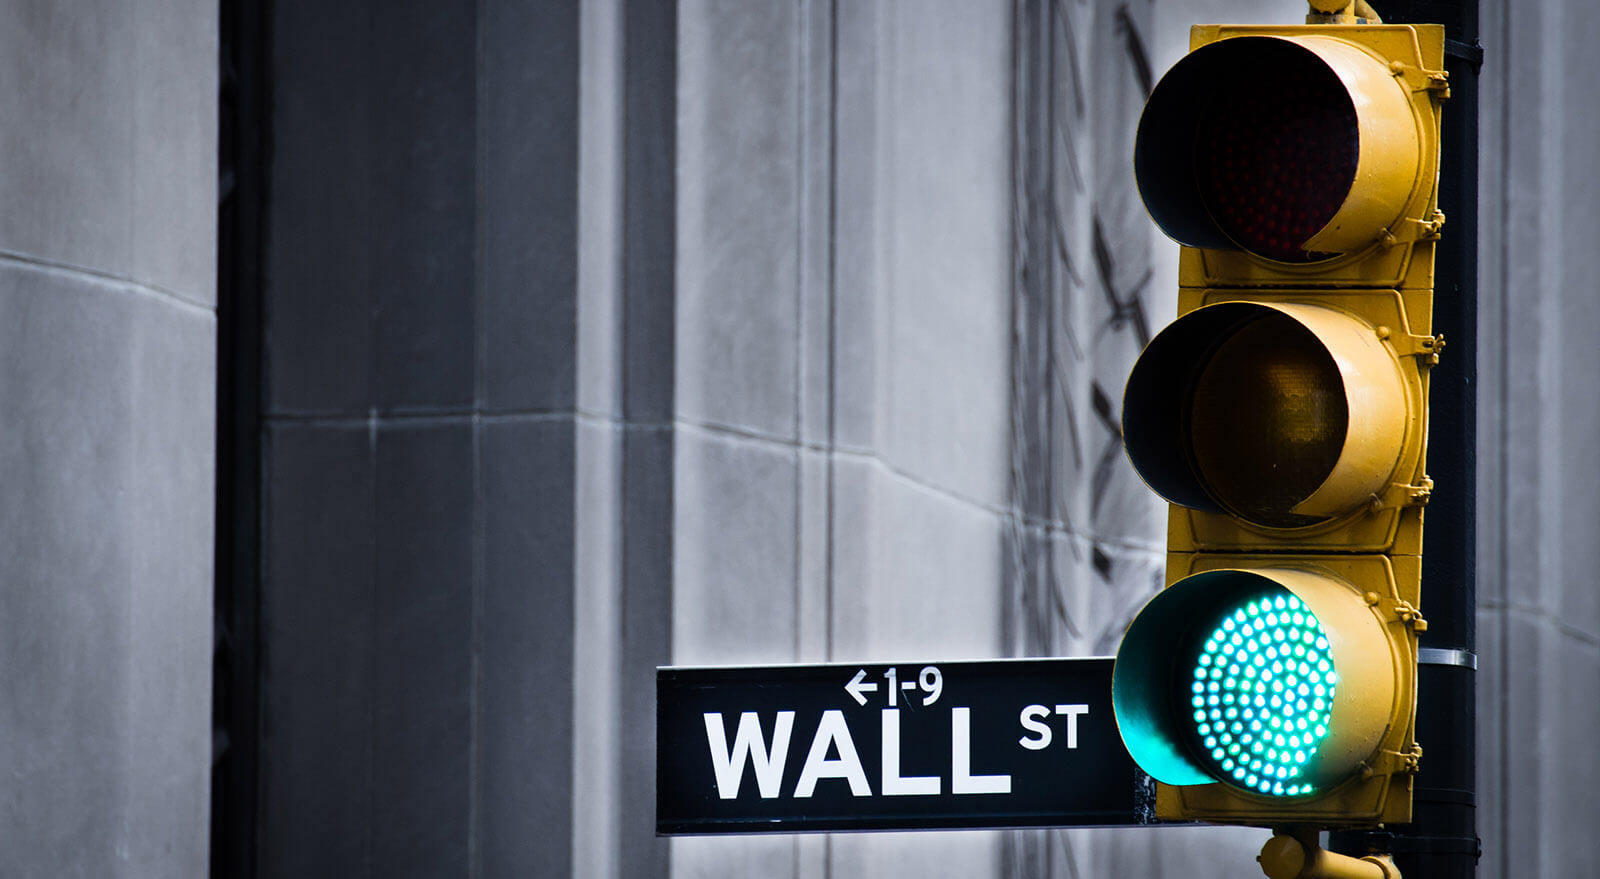 Green traffic light at the beginning of Wall Street, New York